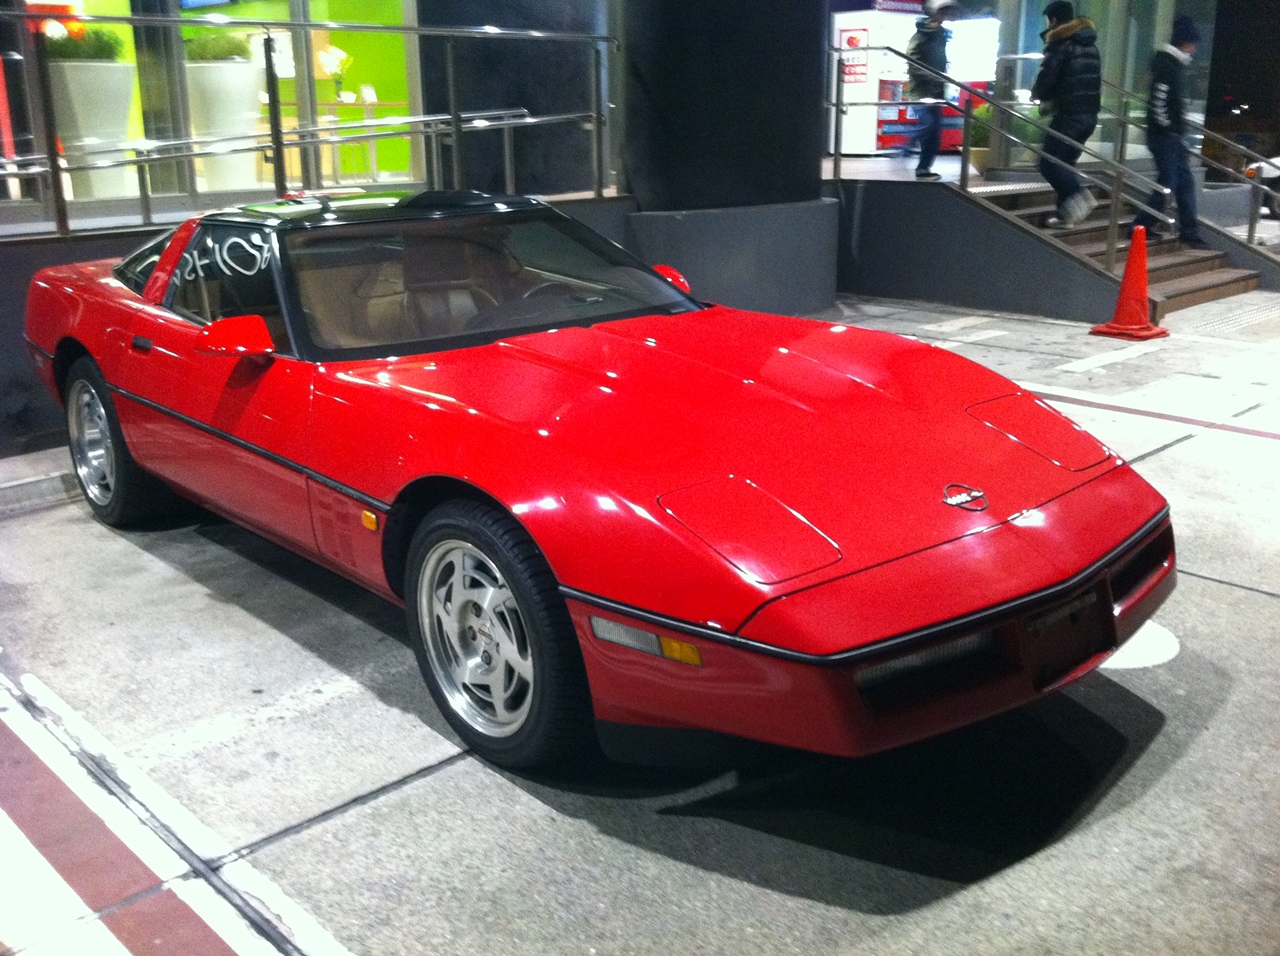 <br>車両情報:<br><br>シボレー コルベット<br>1990年式 C4 ZR-1<br><br>